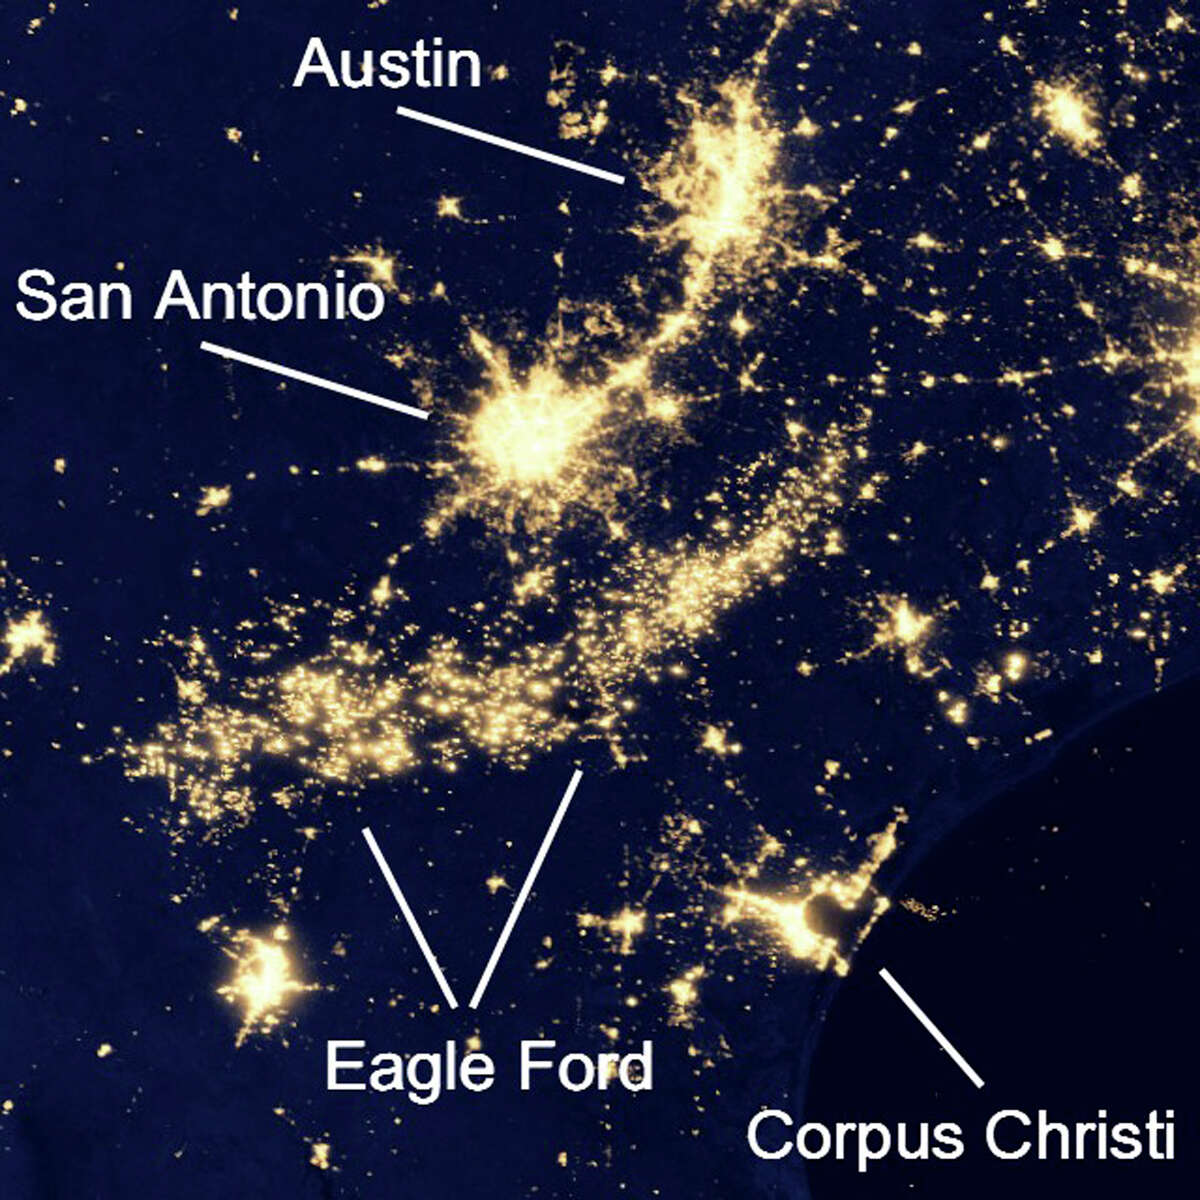 This satellite night image of South Texas clearly shows electrical lights and gas flares in the Eagle Ford Shale region south of San Antonio. This giant arc of lights was not visible on a NASA poster from 1994-95.